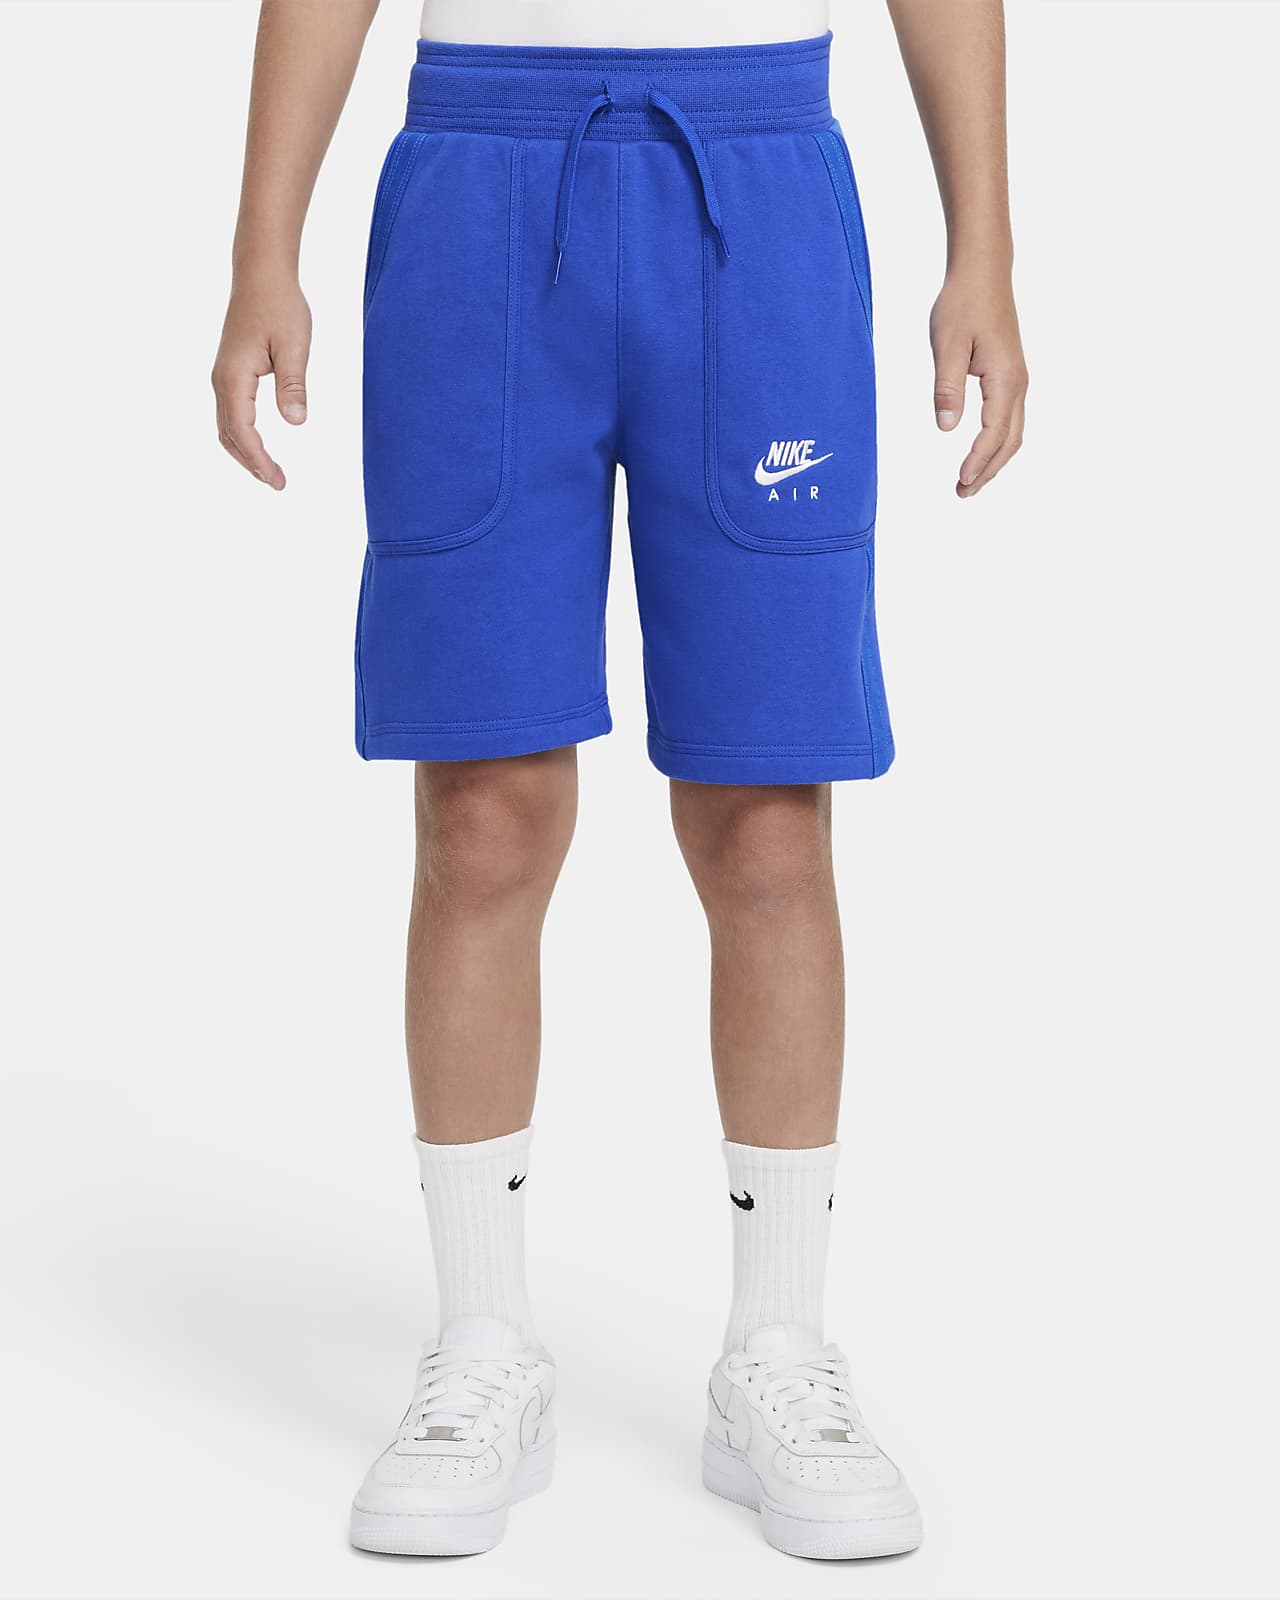 Shorts in French Terry Nike Air - Ragazzo